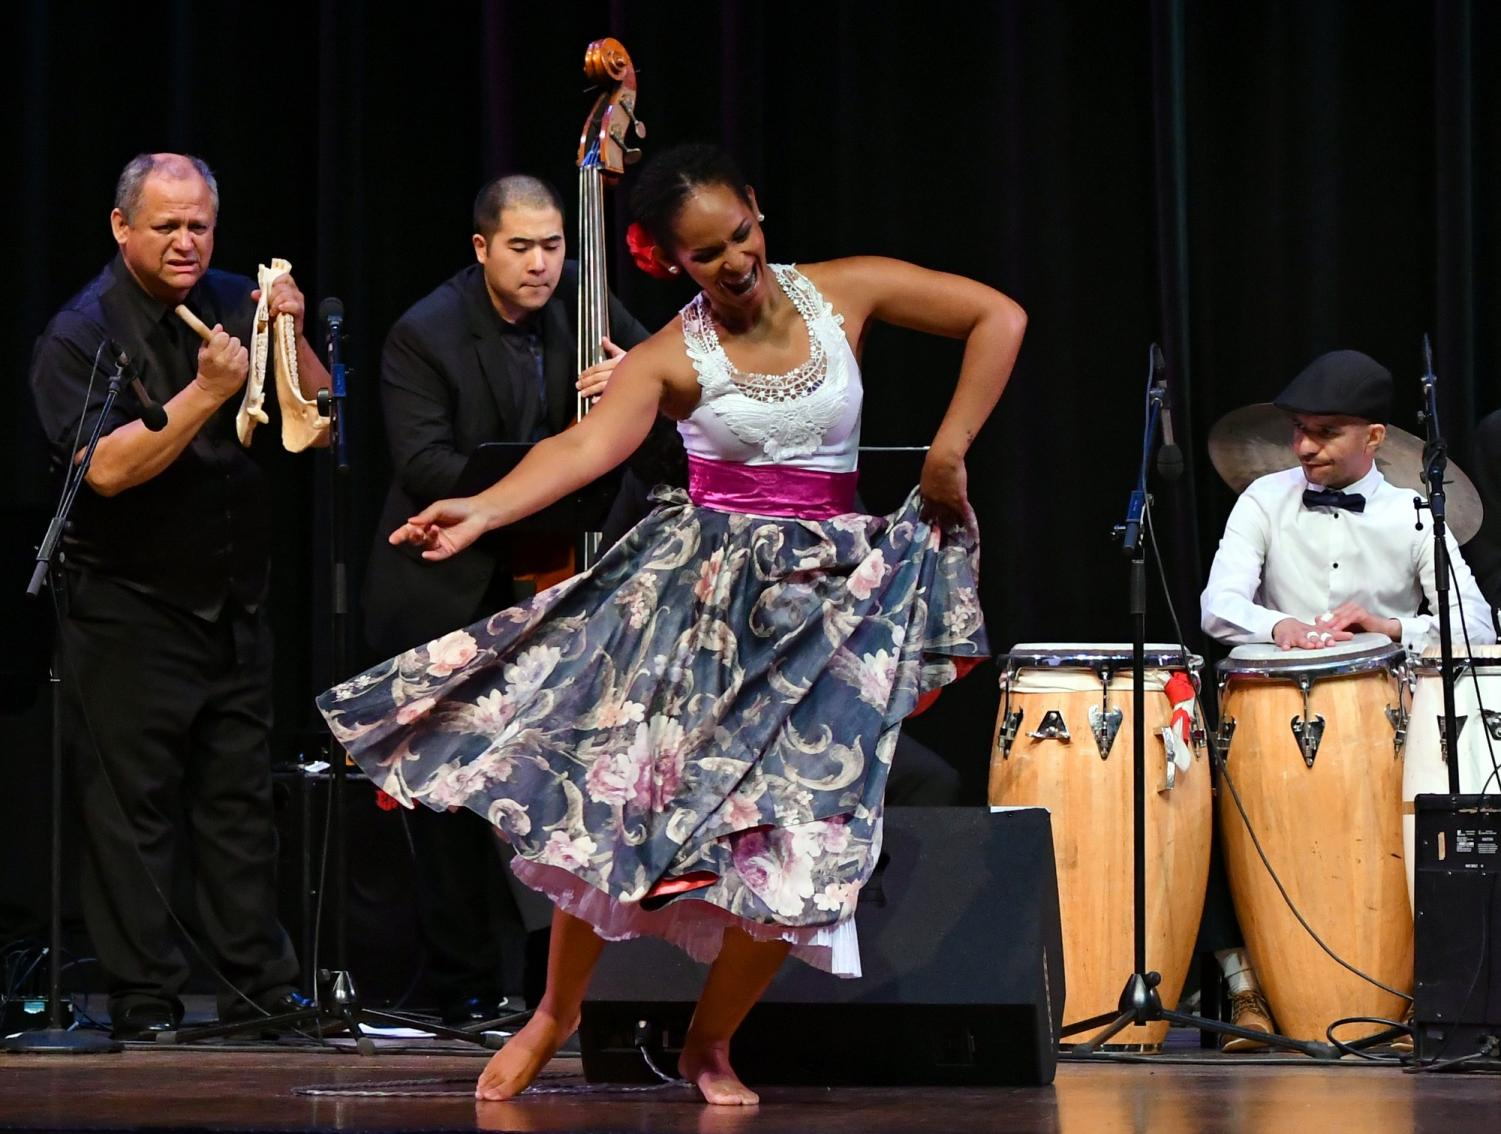 Peruvian dancer Nadia Calmet performs with the Afro Peruvian Jazz Orchestra during  El Camino's ¡!Fiesta de Jazz! on Saturday, May 5. Photo credit: Jack Kan